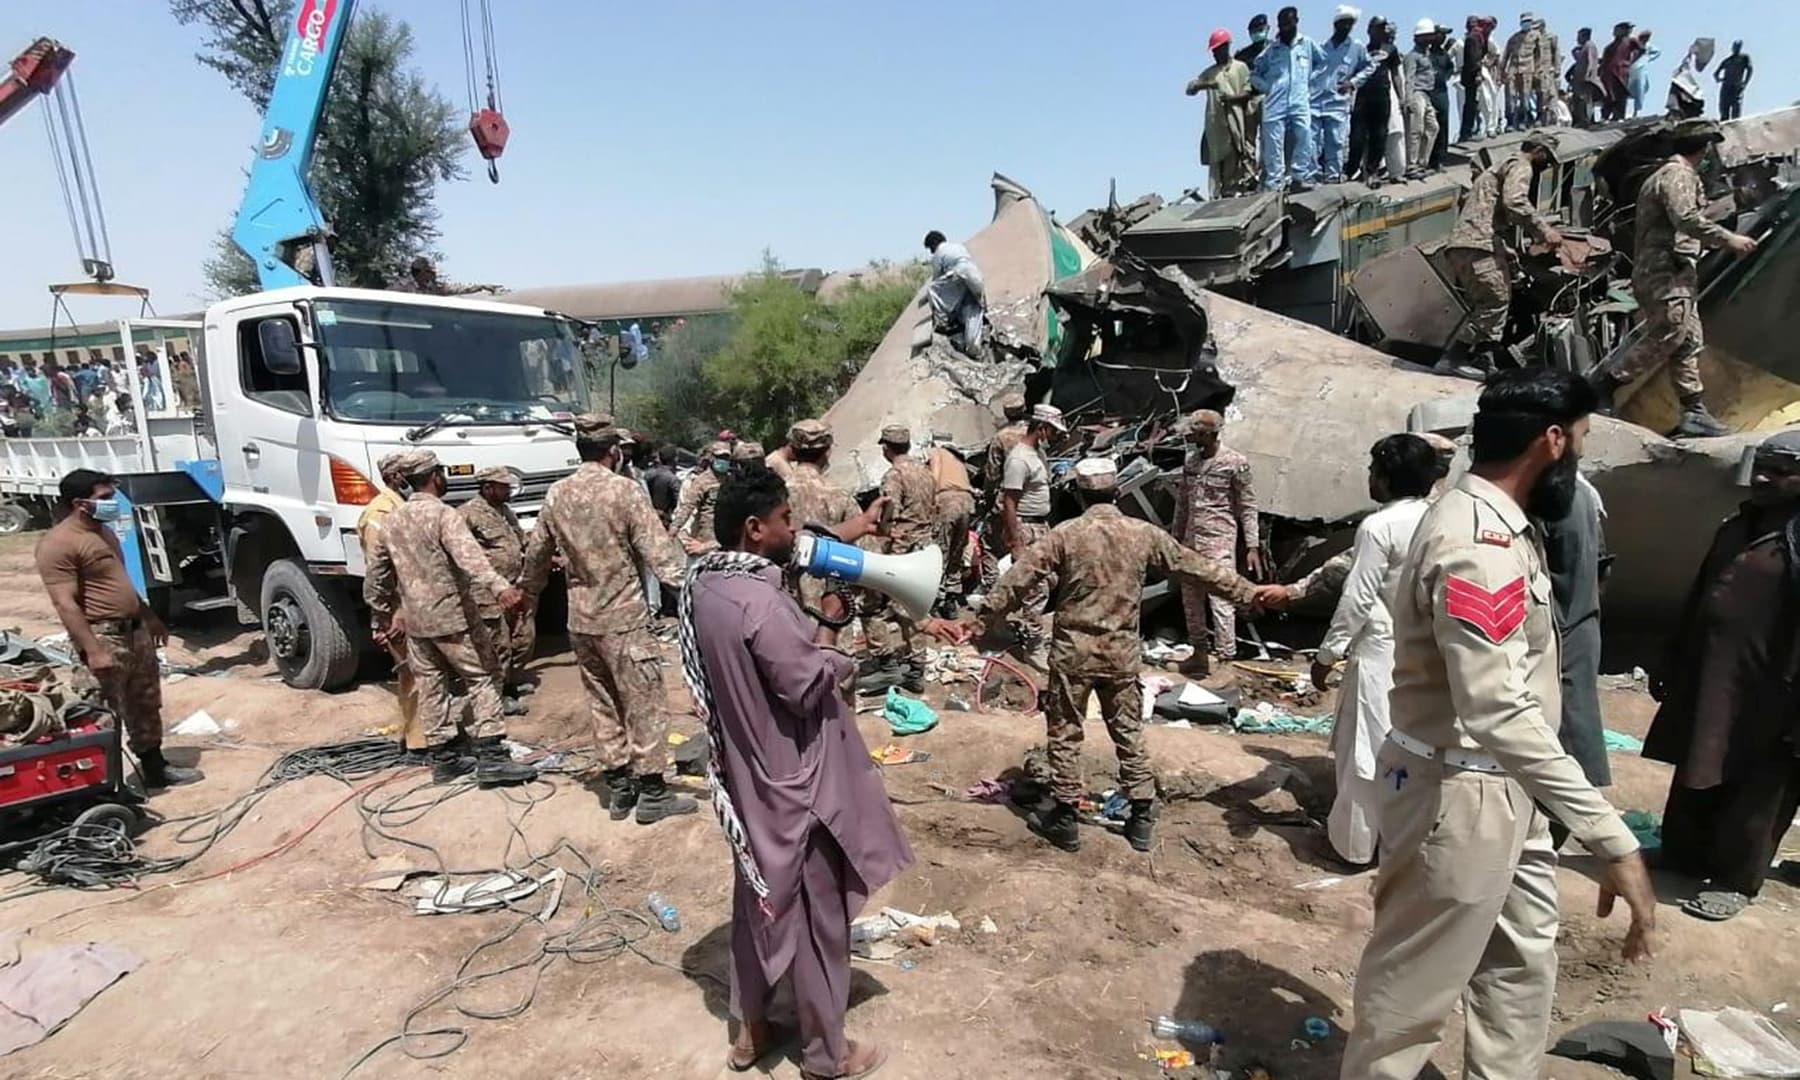 Paramilitary soldiers and rescue workers gather at the site of a collision between two trains in Ghotki, June 7. — ISPR via Reuters